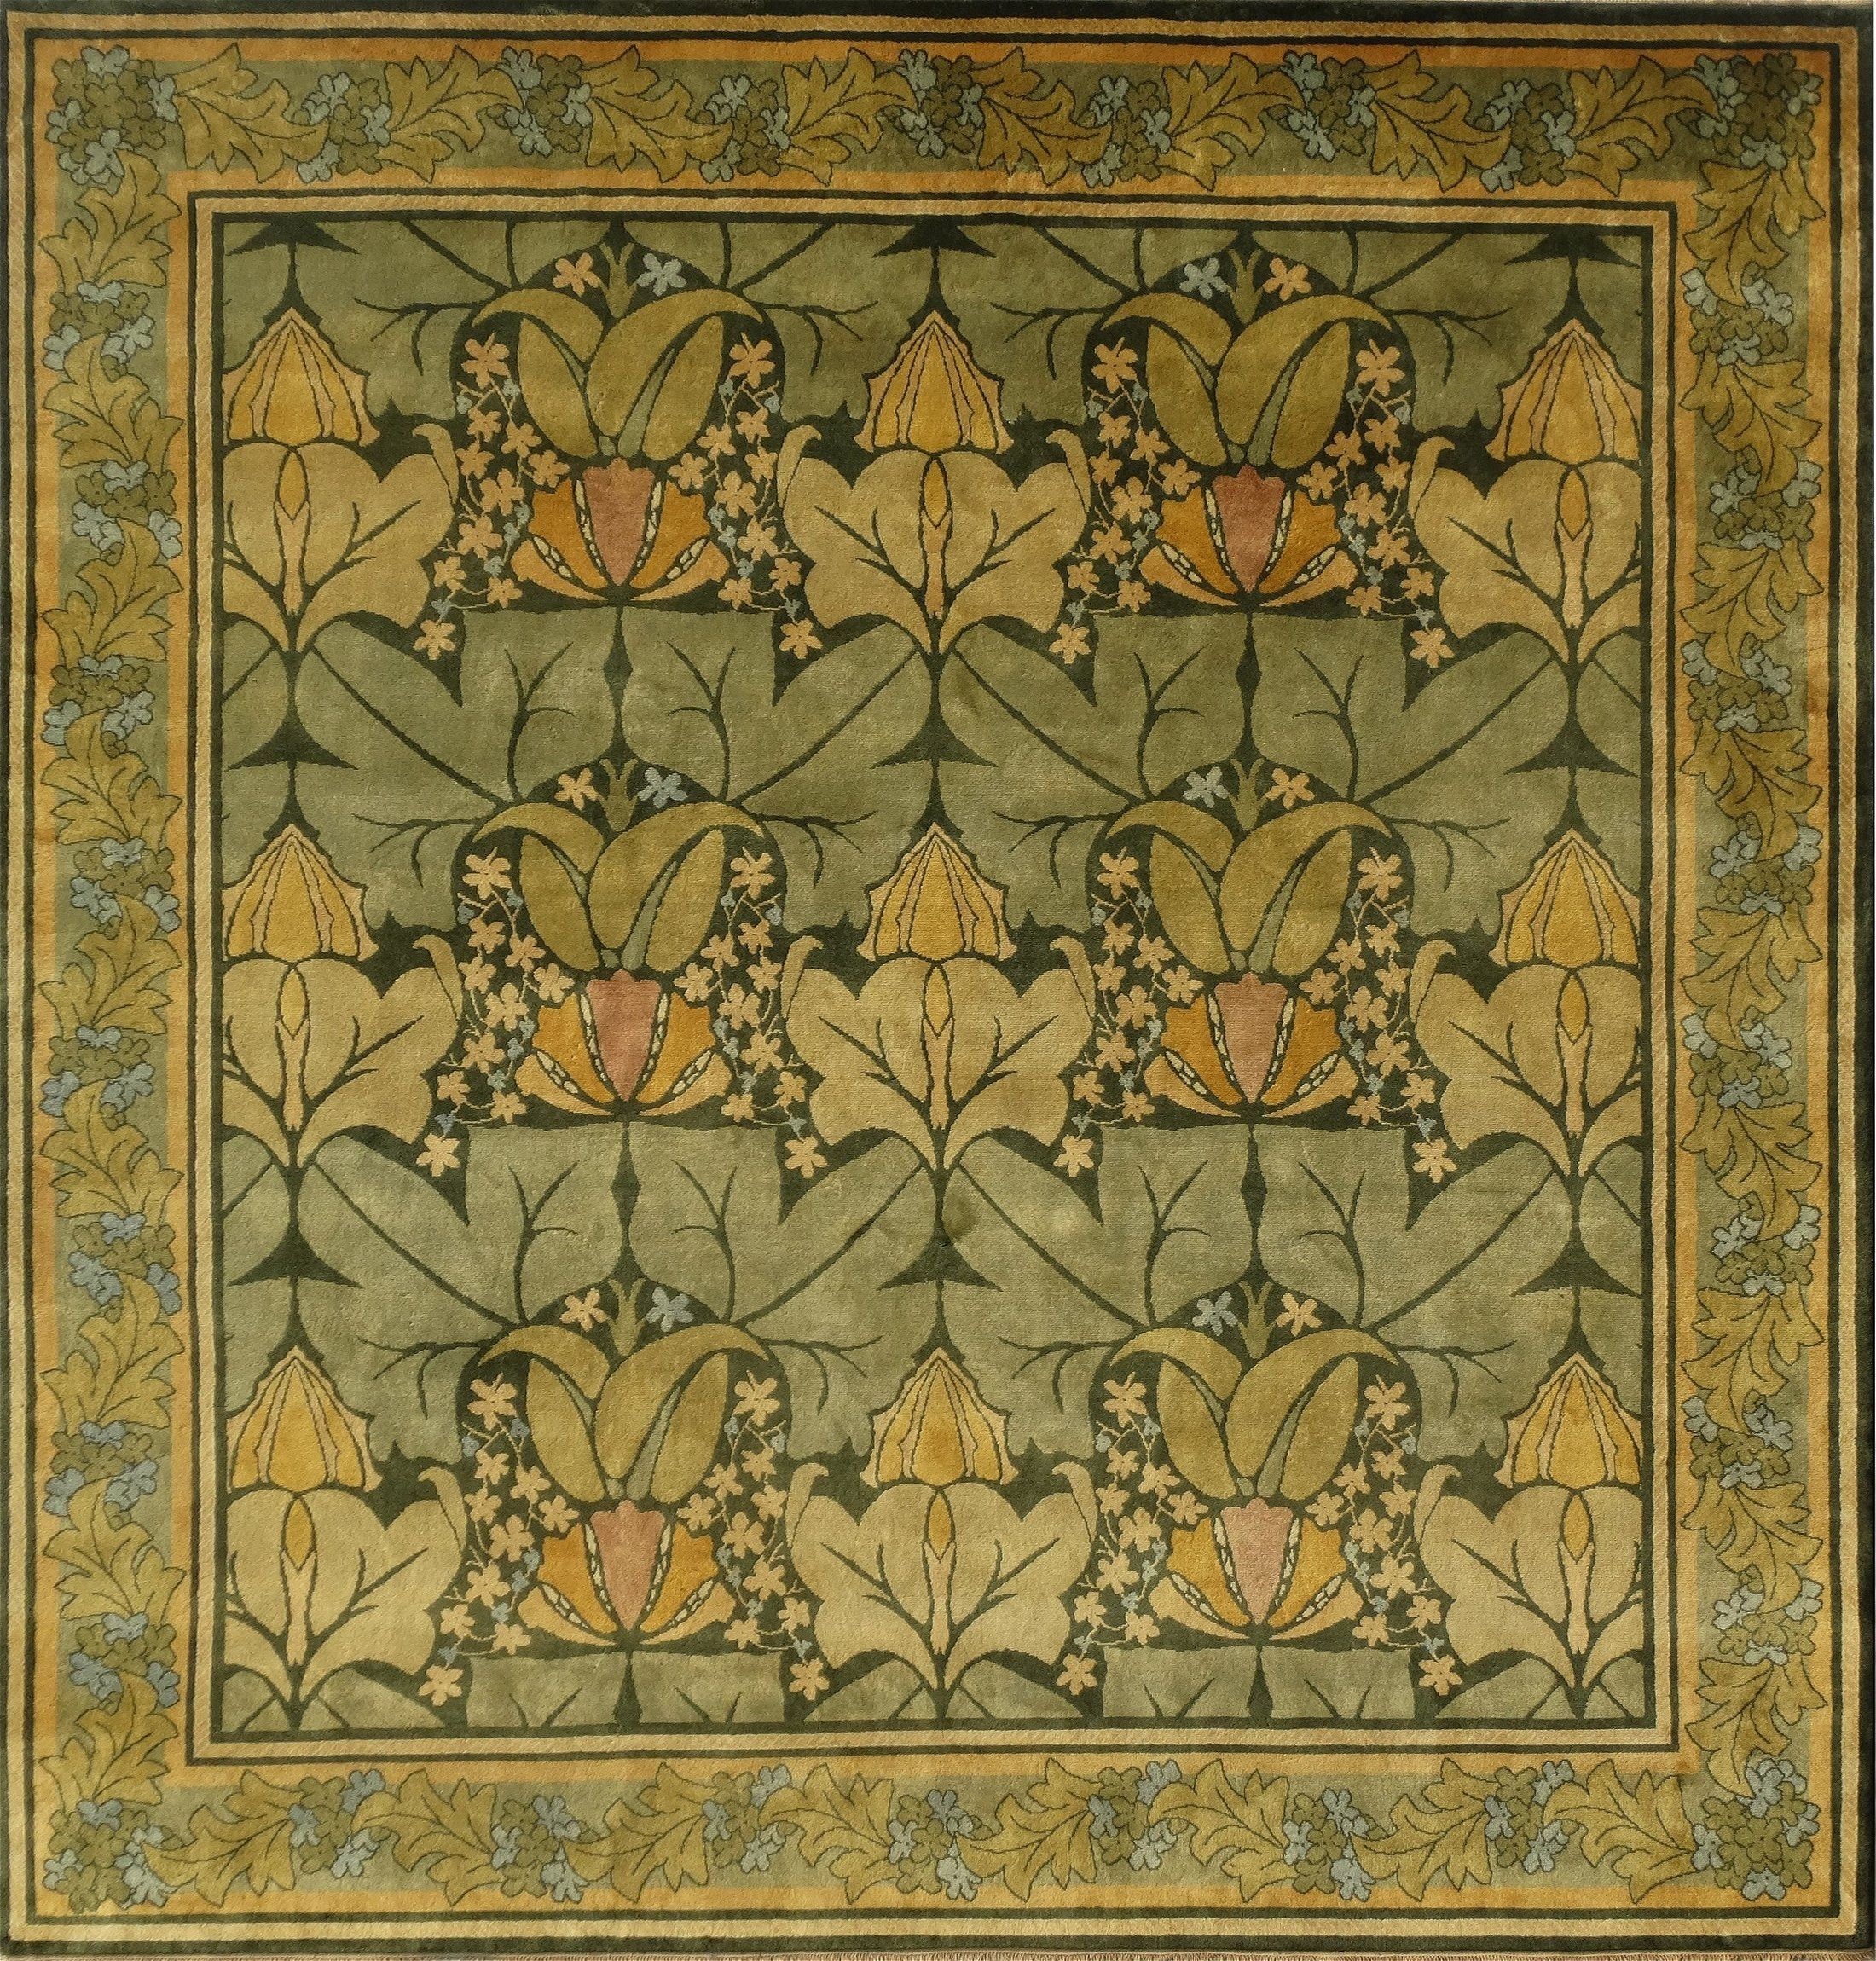 Arts And Crafts Rugs Pottery Barn: The Wykehamist By C.F.A. Voysey